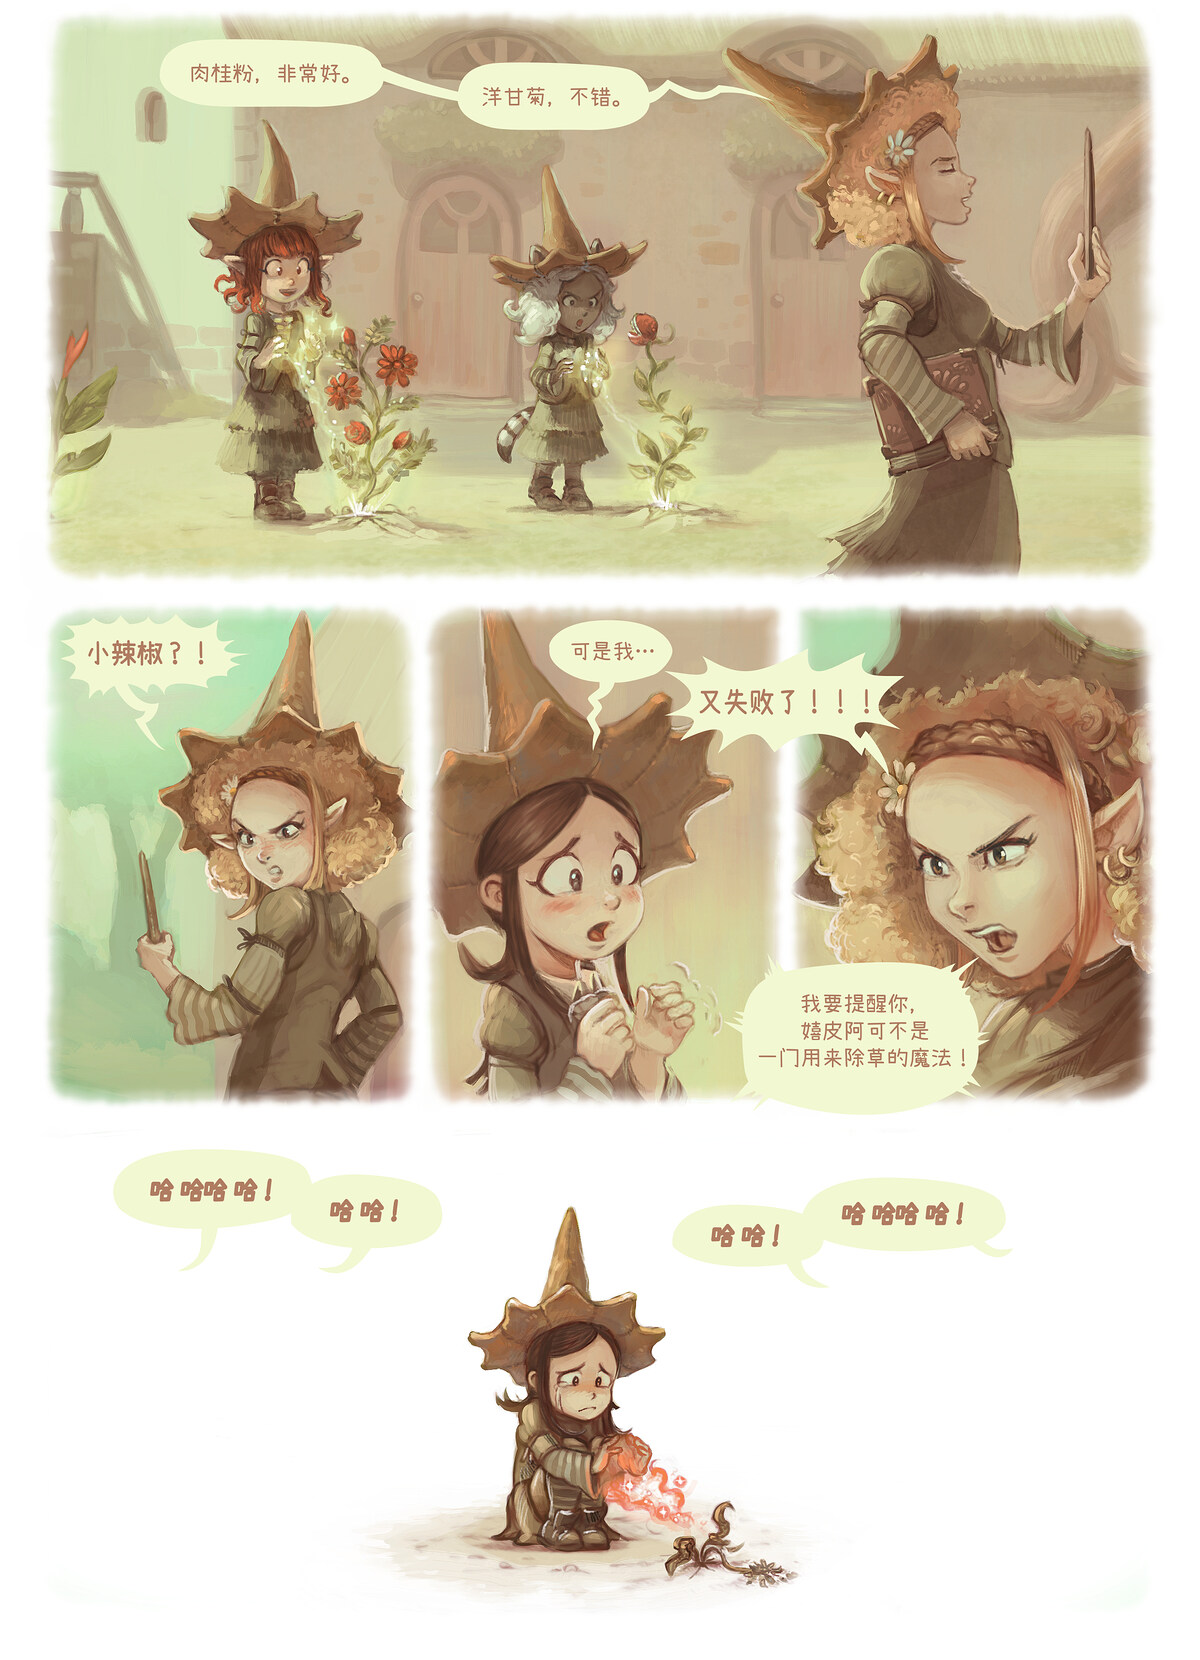 A webcomic page of Pepper&Carrot, 漫画全集 18 [cn], 页面 3